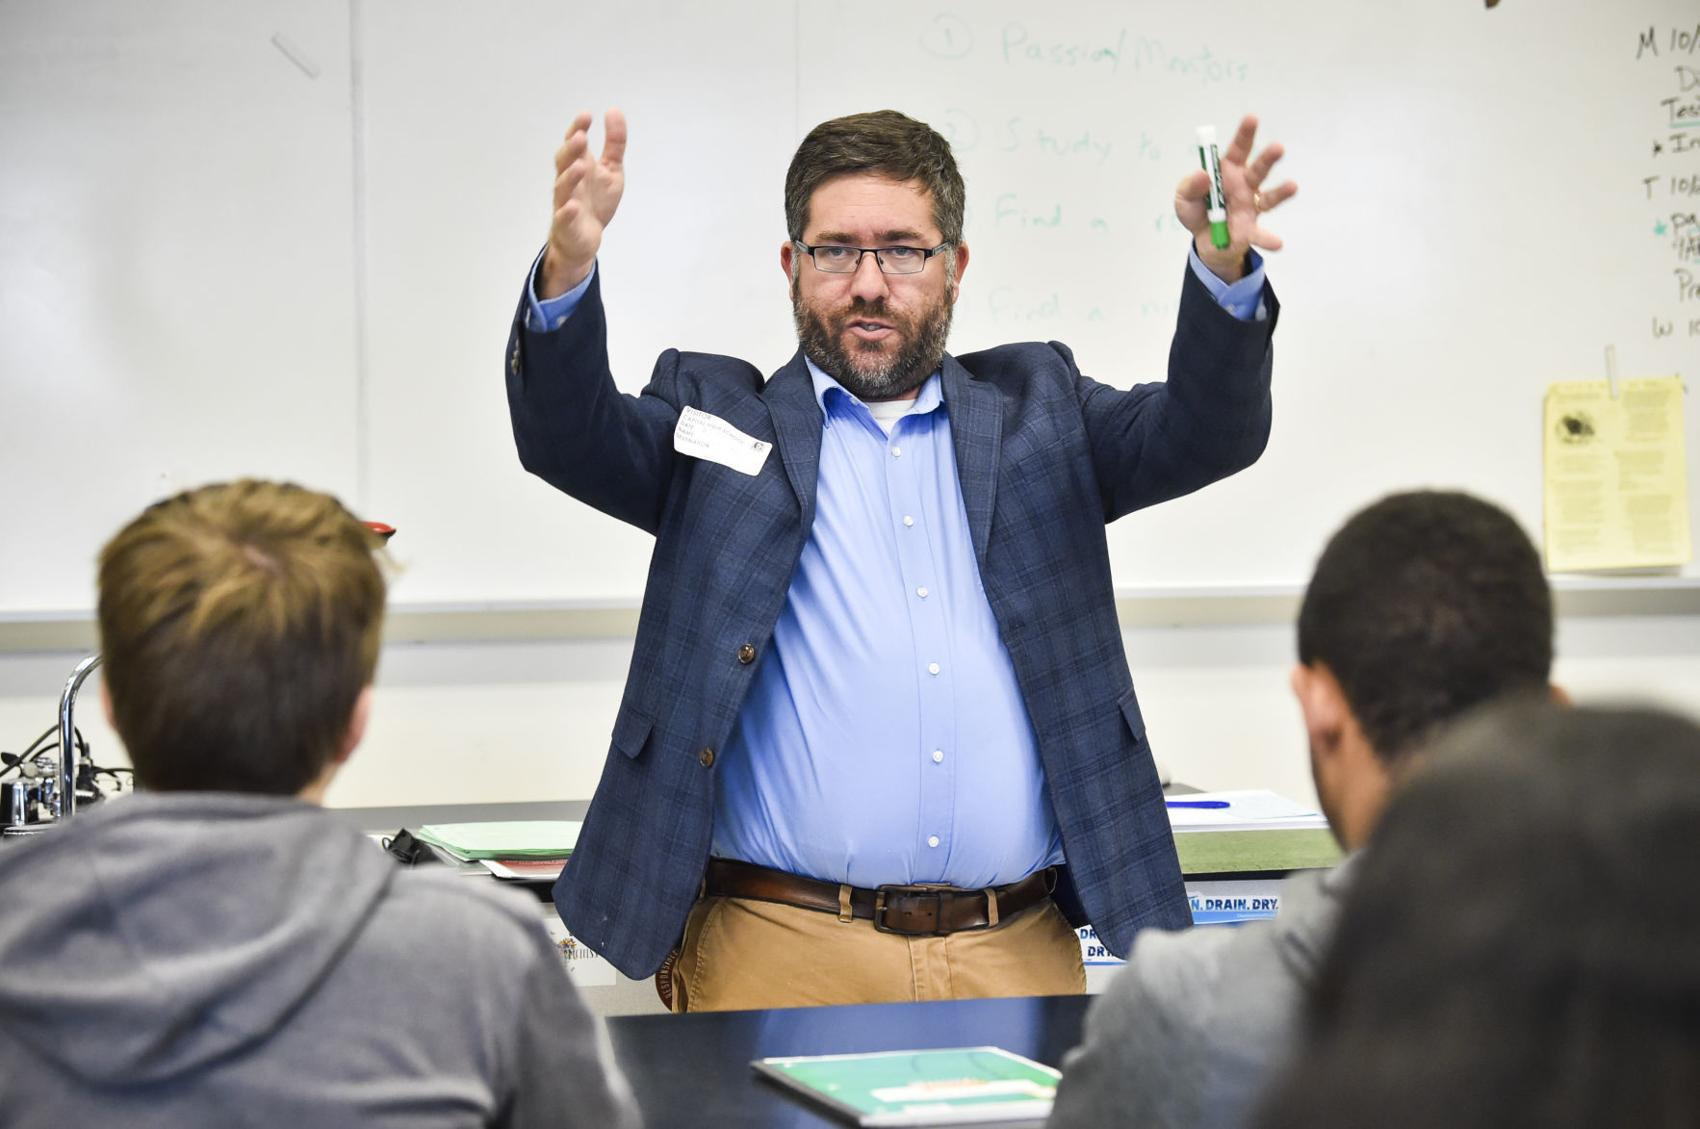 UM Professors keep Montana youth engaged and connected to positive role models